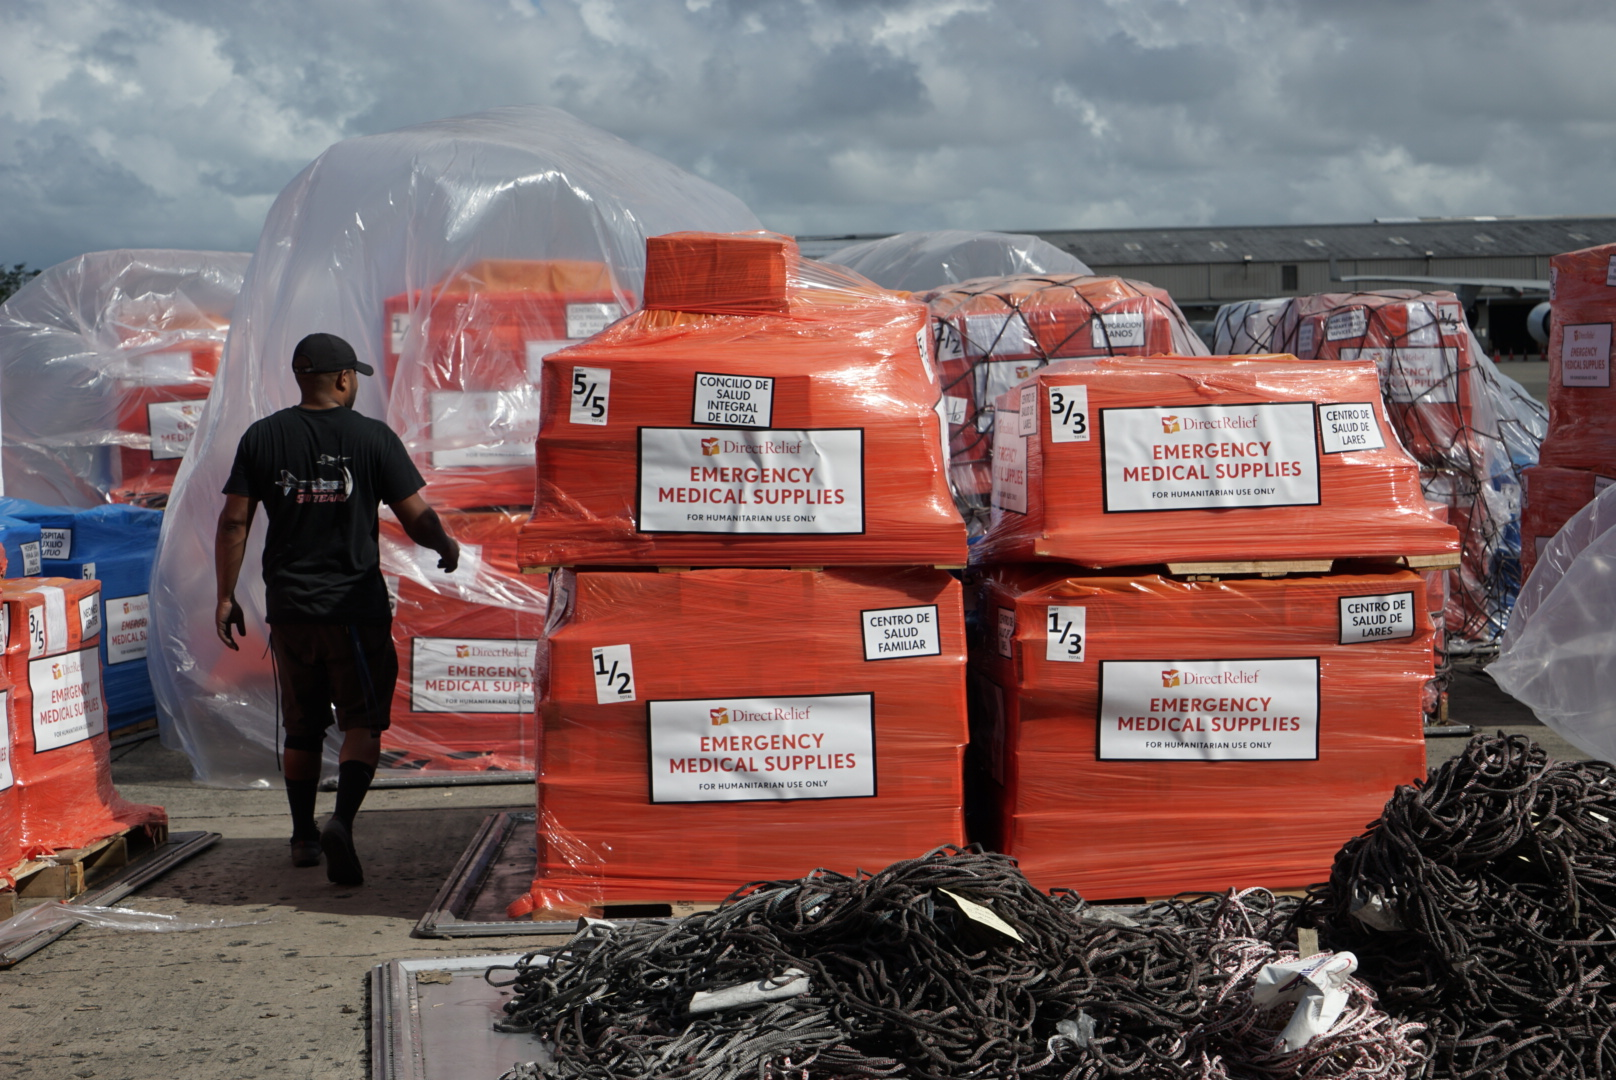 79,365 lbs of medications, nutritionals and medical supplies from Direct Relief arrive at the Luis Muñoz Marín International Airport in San Juan. (Photo: Lara Cooper)